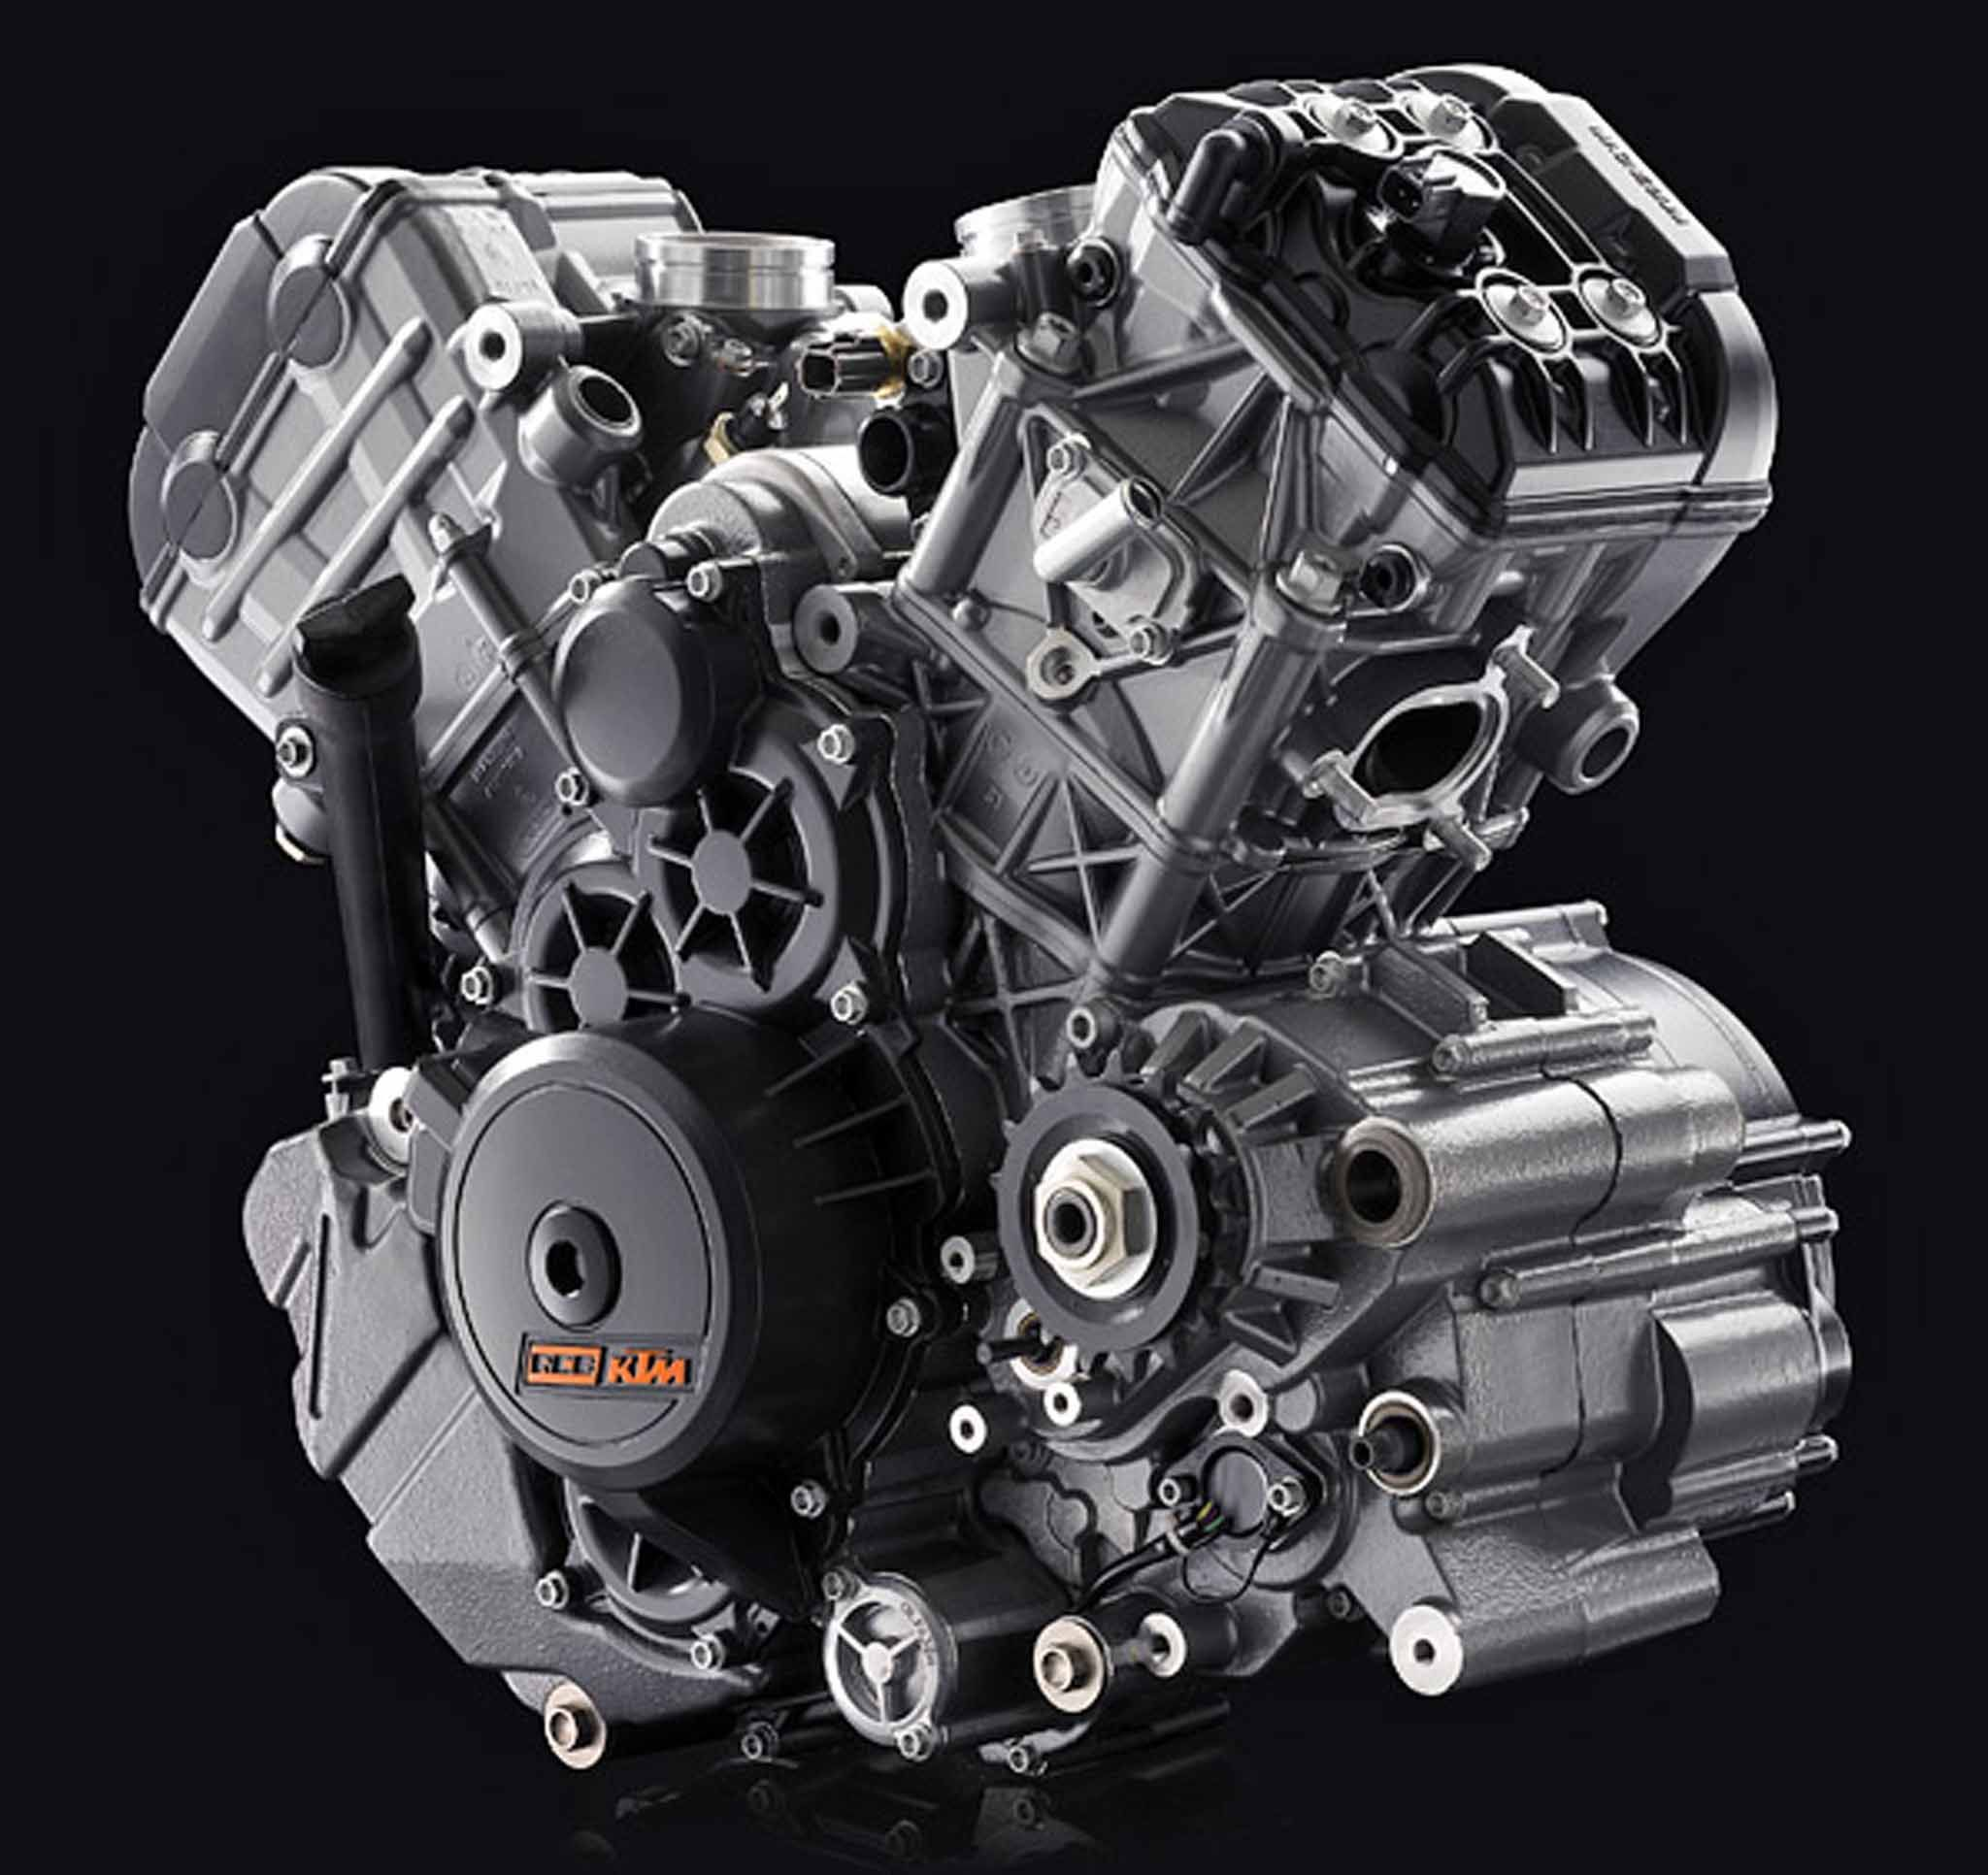 KTM RC8_Review_engine_Performance   Rides   Motorcycle